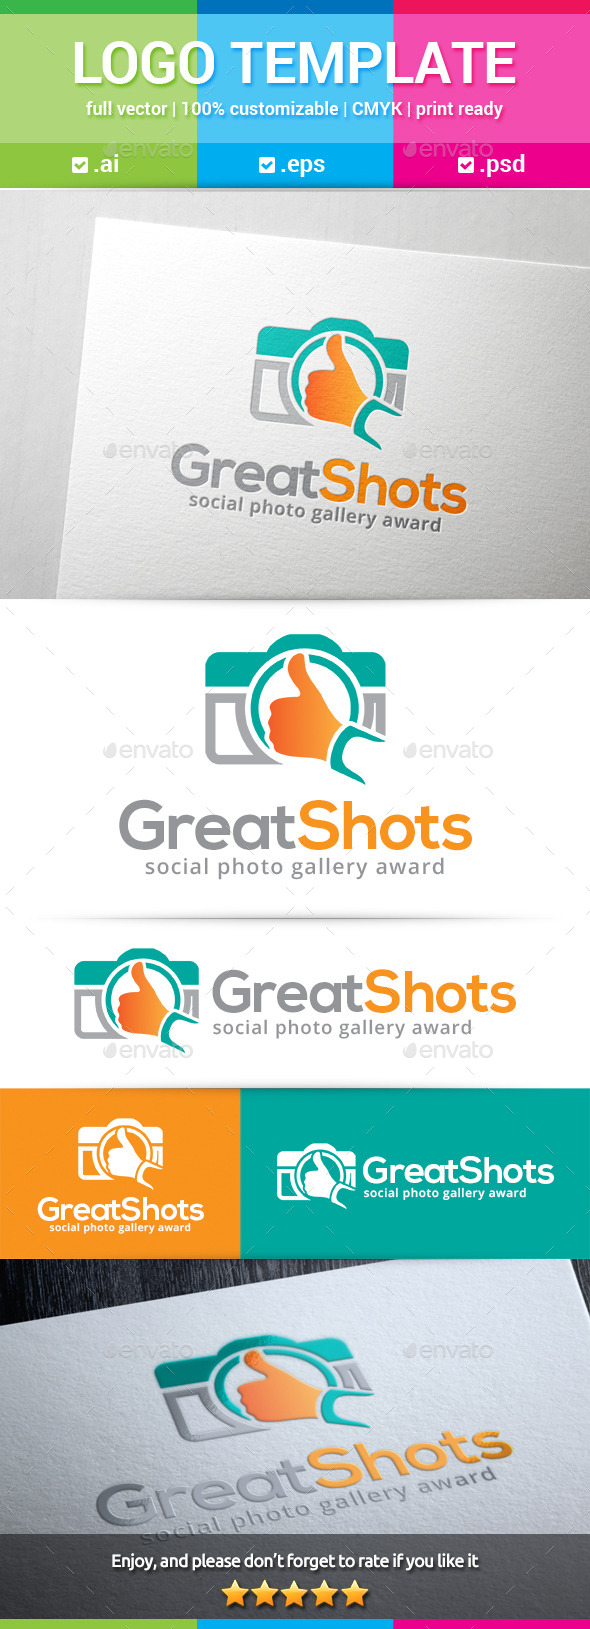 GraphicRiver Great Shots Logo 10373003